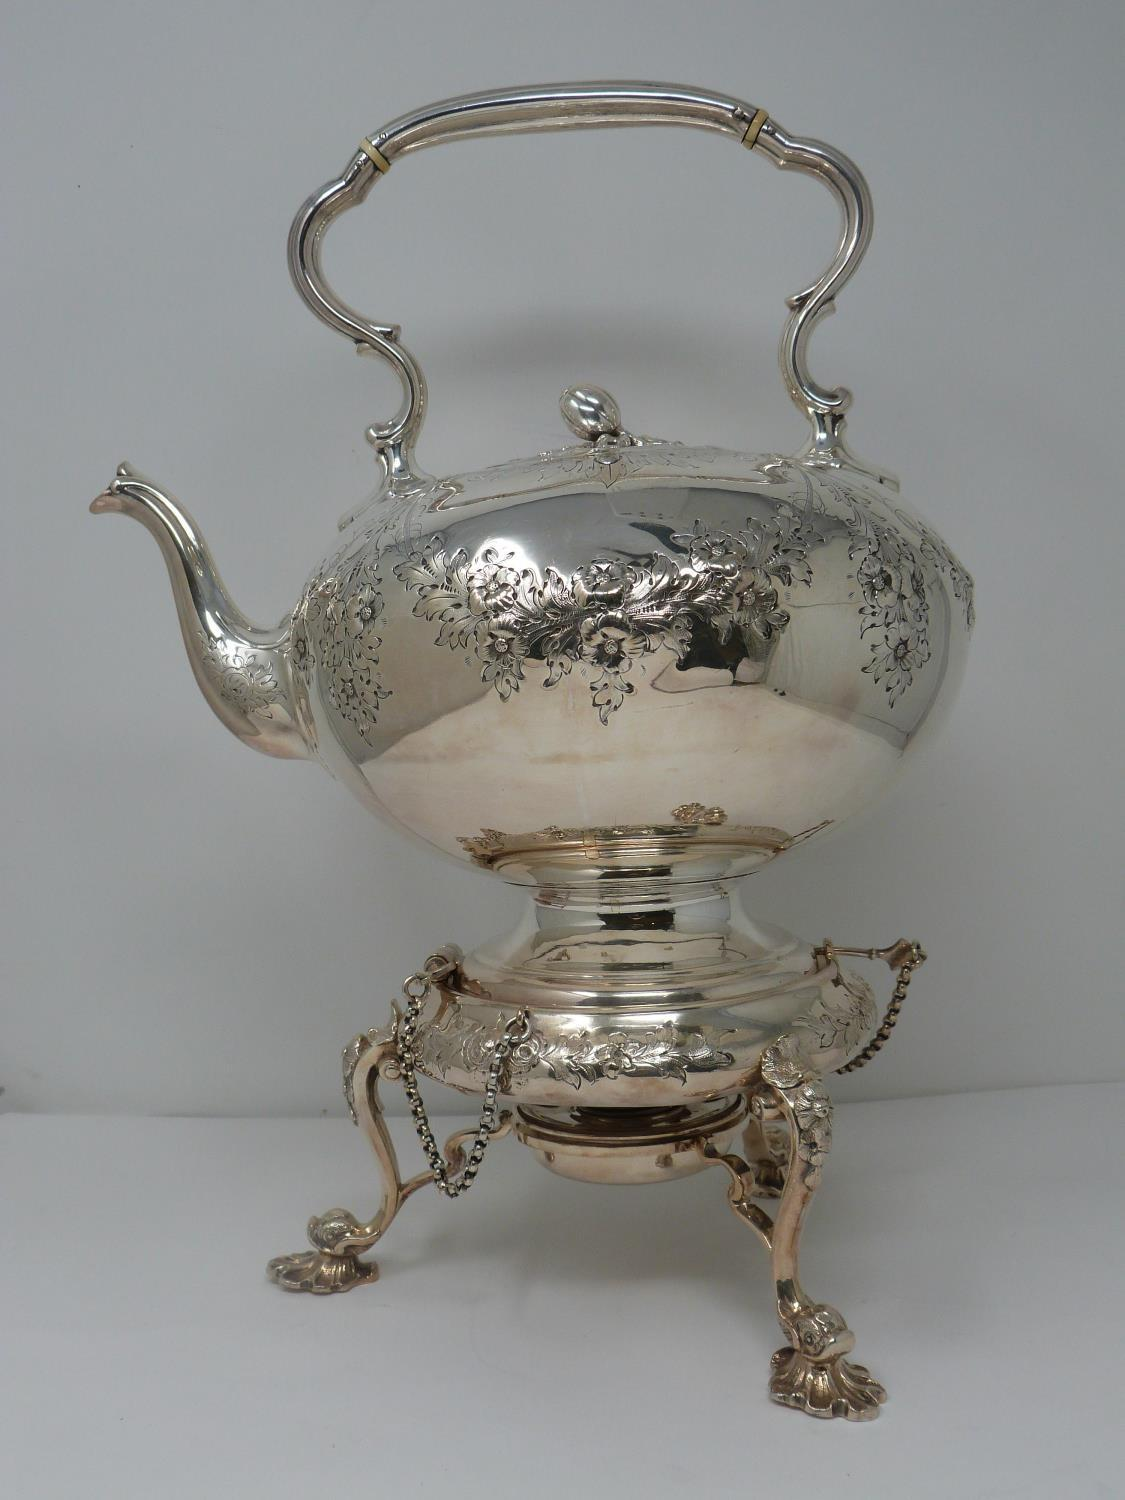 An antique white metal and ivory spirit kettle and stand. The kettle has a flower bud finial and